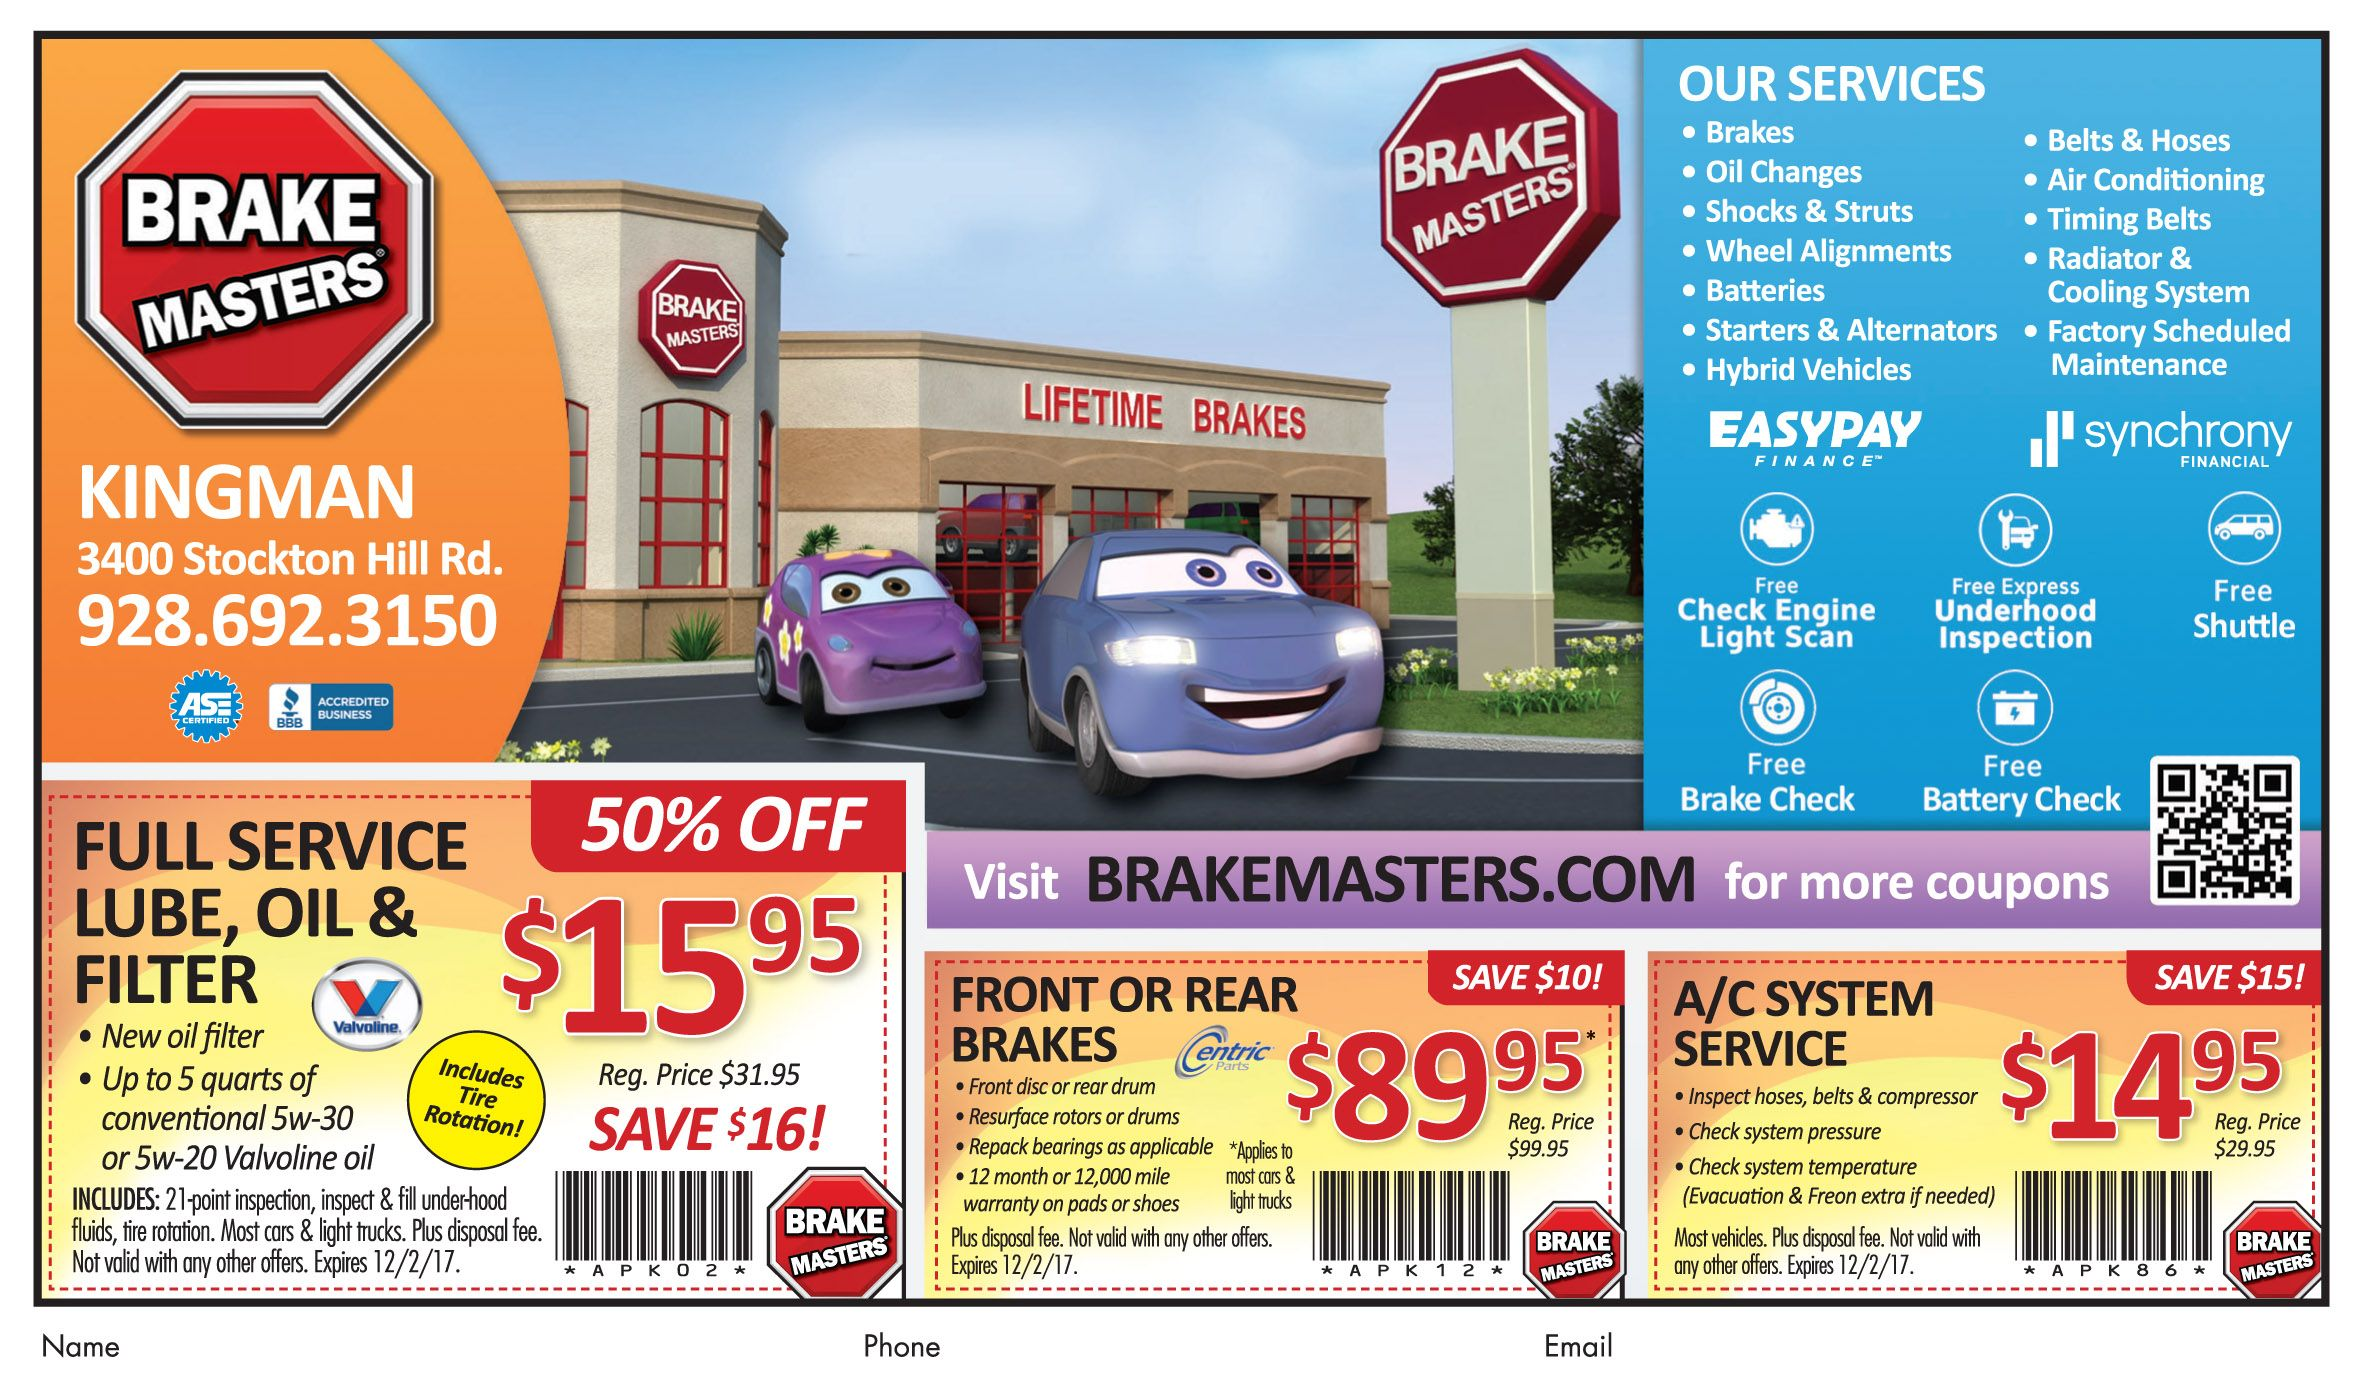 Brake Masters Coupons >> Brakes Squealing Brakemasters Can Fix Them Right Up For